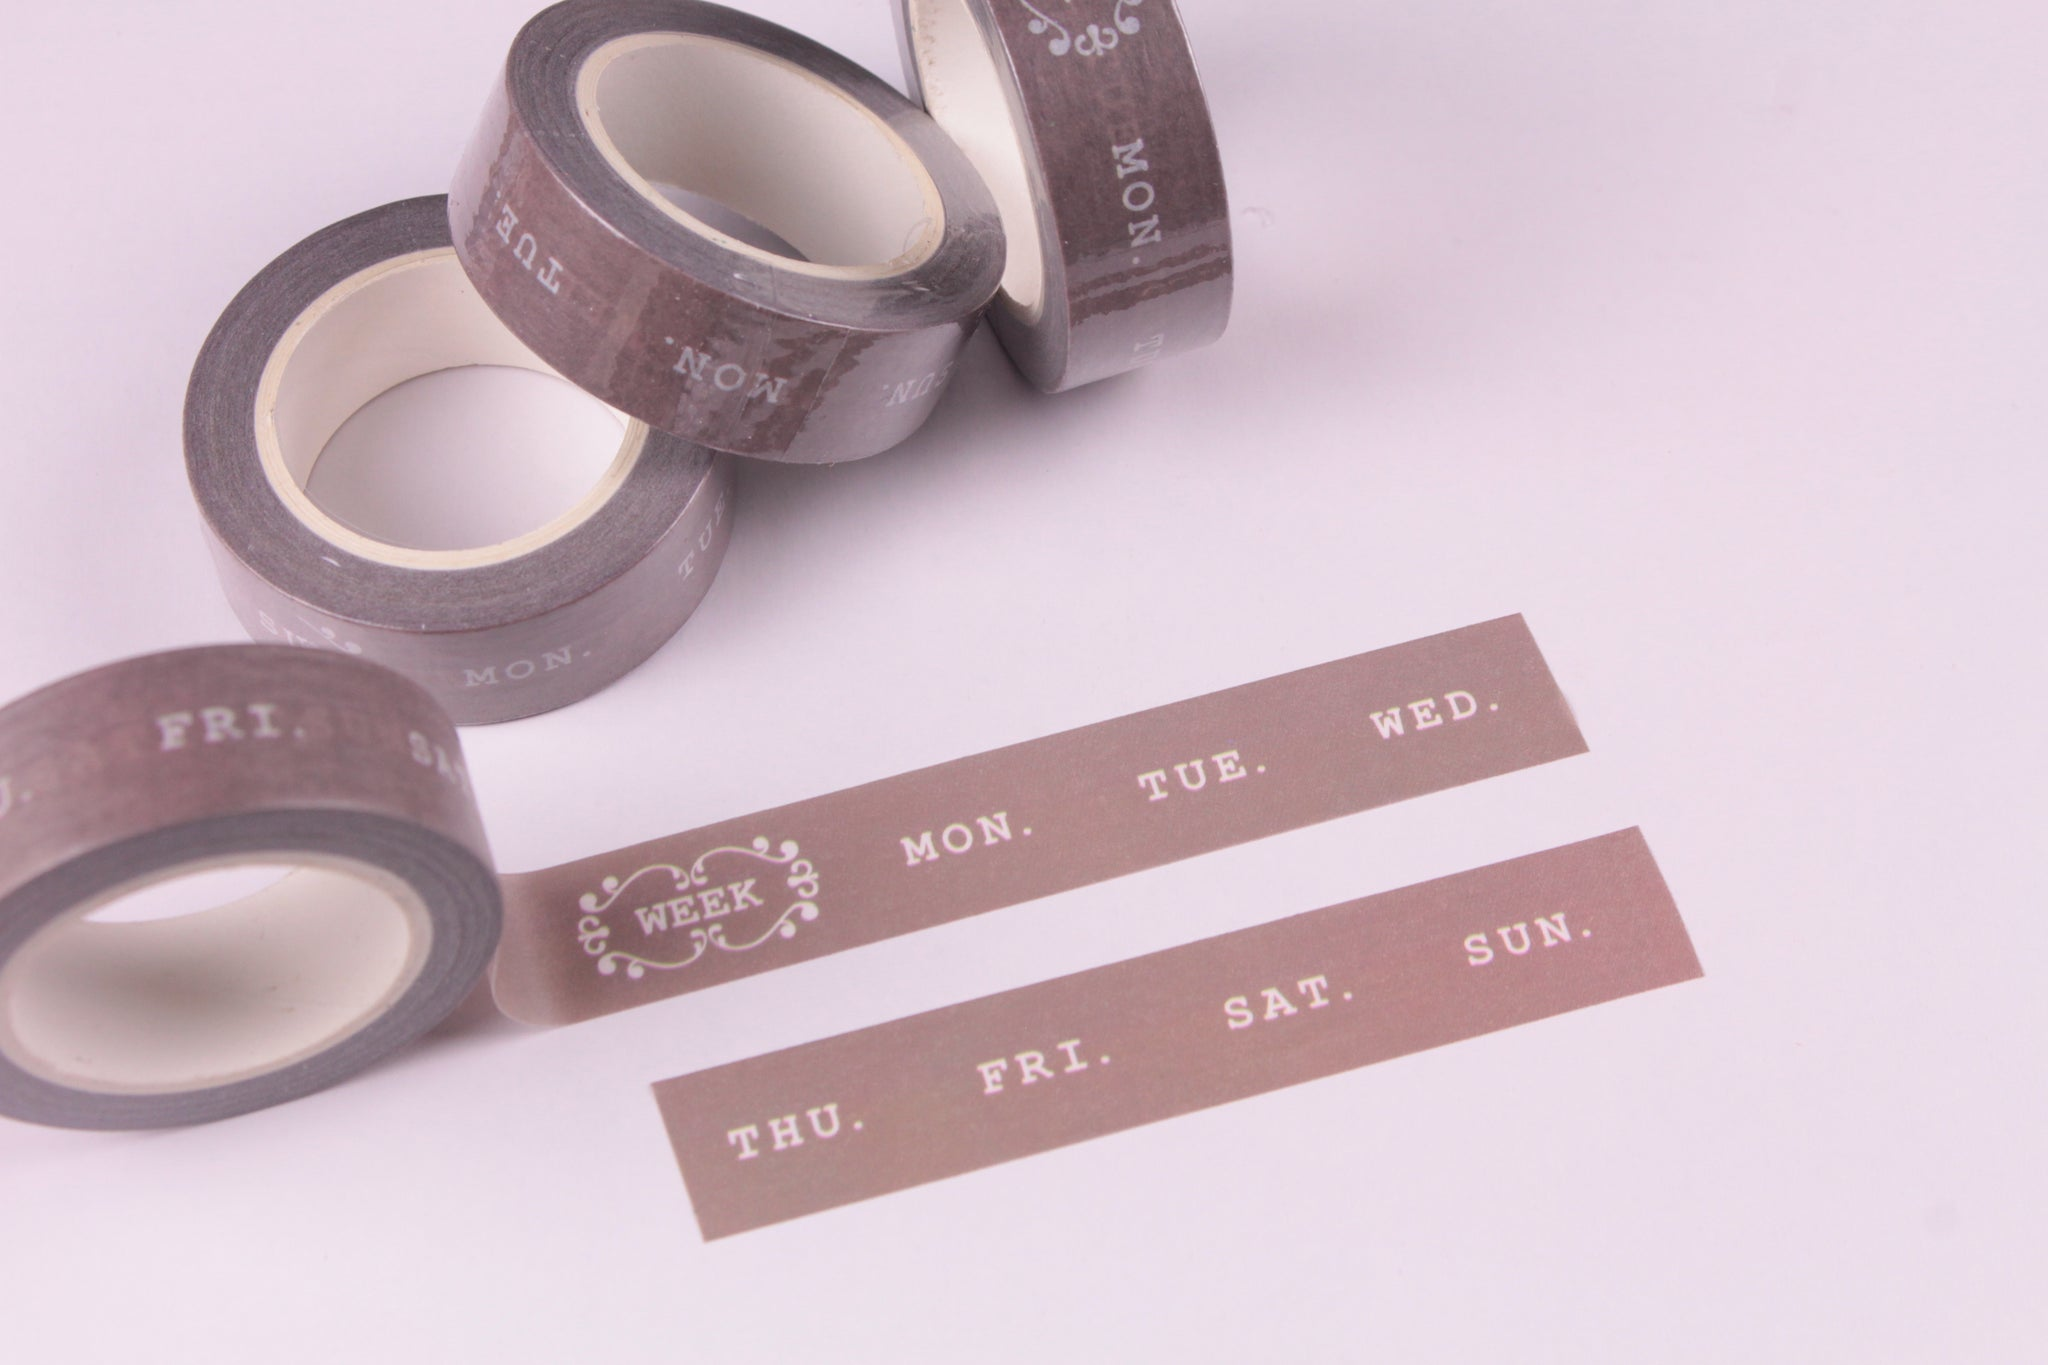 Days of the Week Washi Tape, BuJo series washi tape